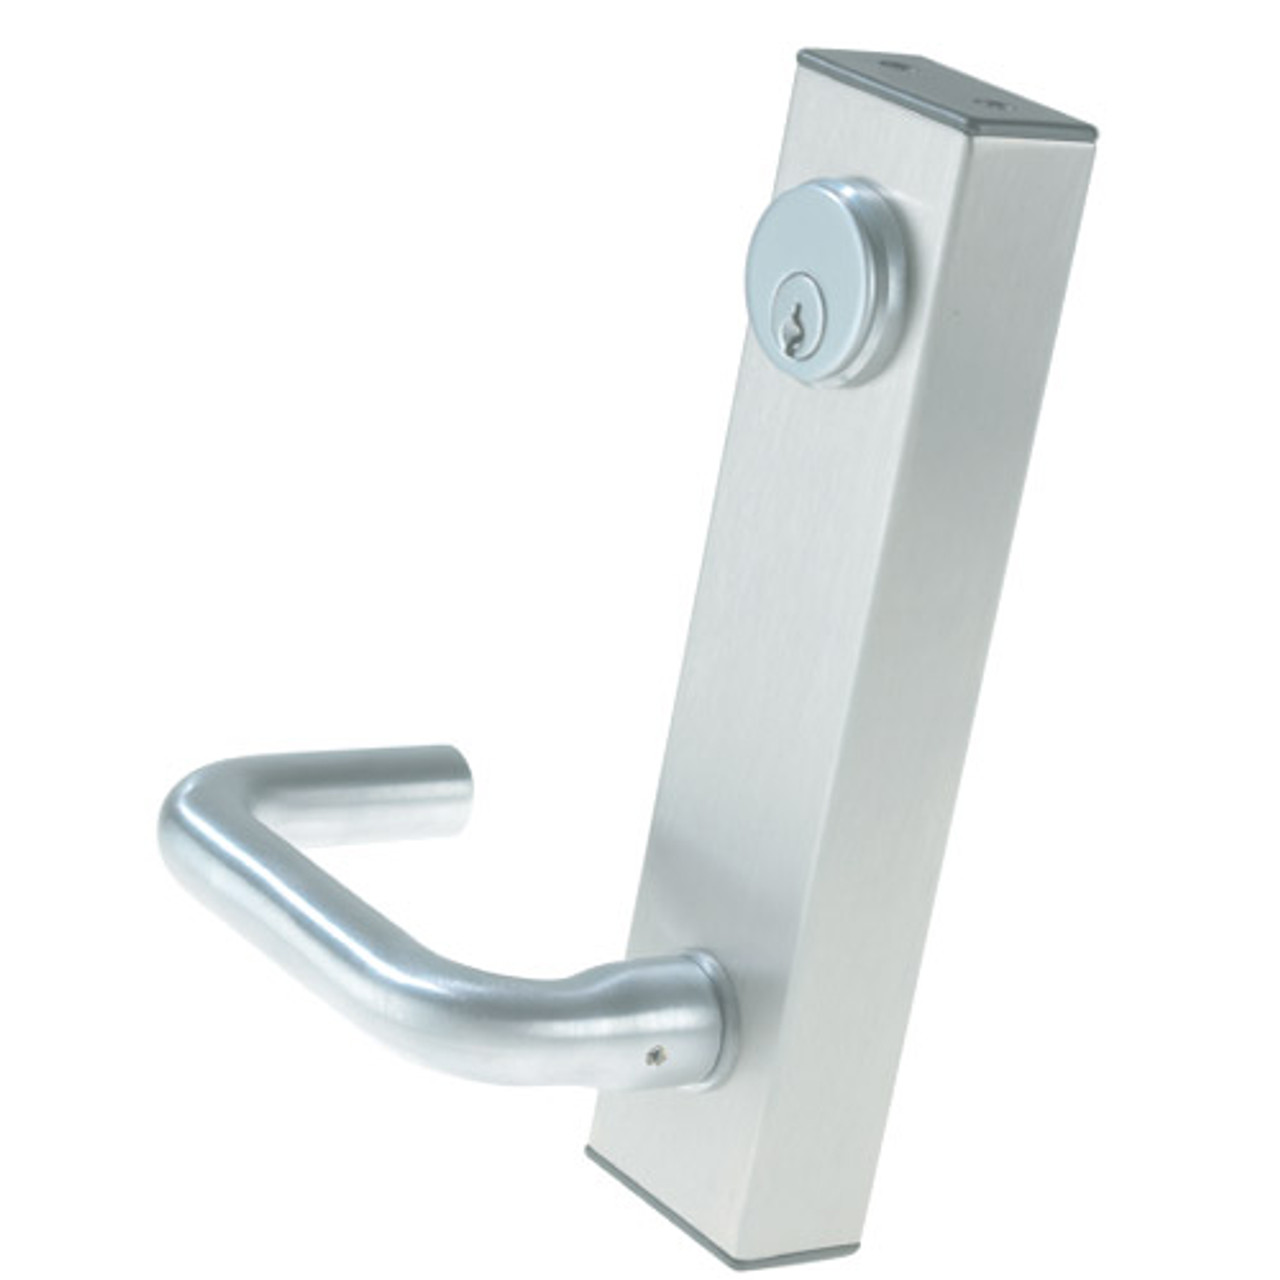 3080E-02-0-3U-55 US32 Adams Rite Electrified Entry Trim with Round Lever in Bright Stainless Finish